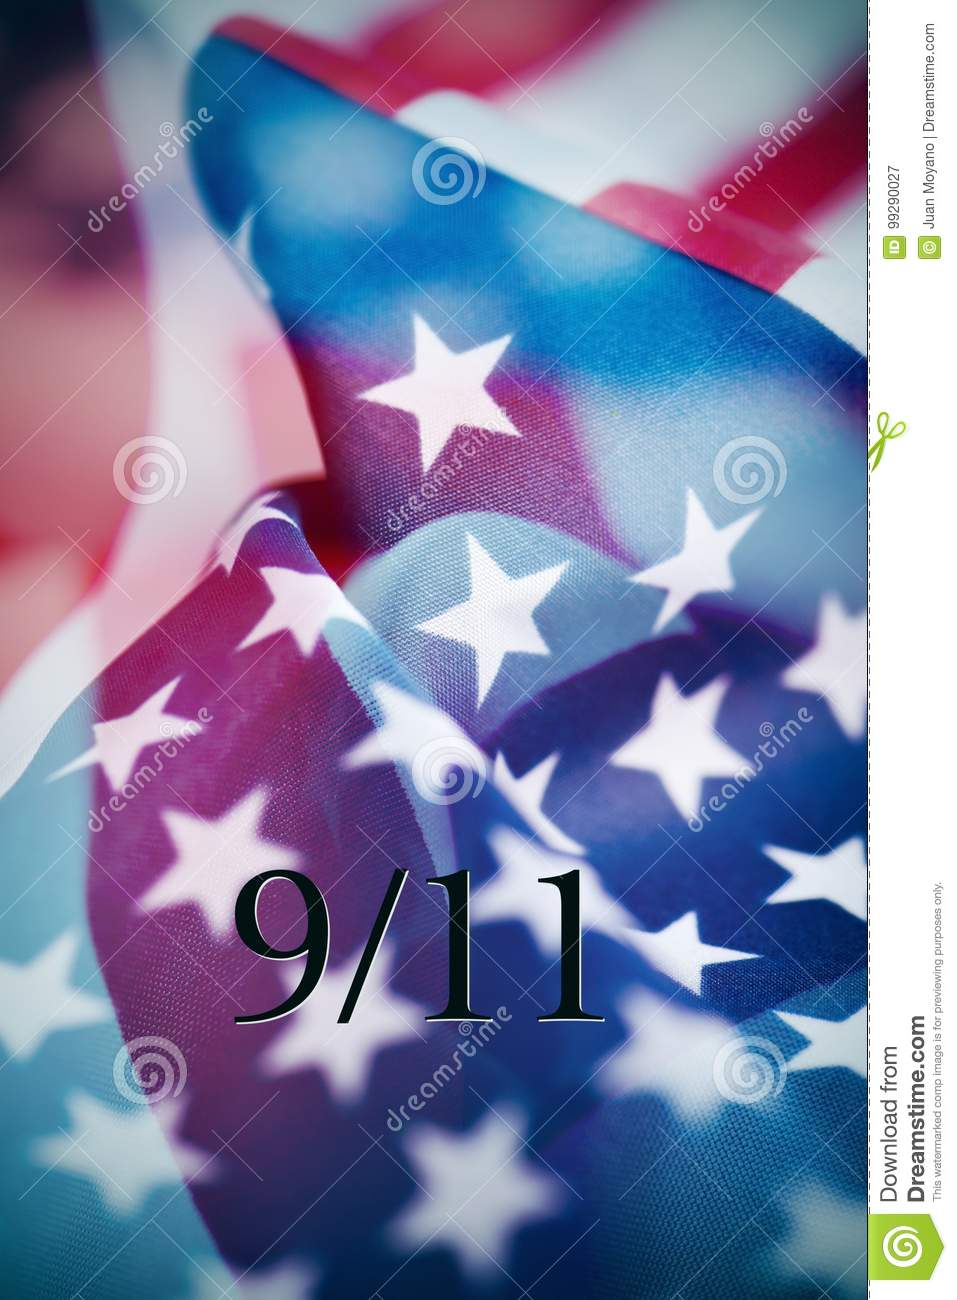 Text 9/11 for the September 11 attacks